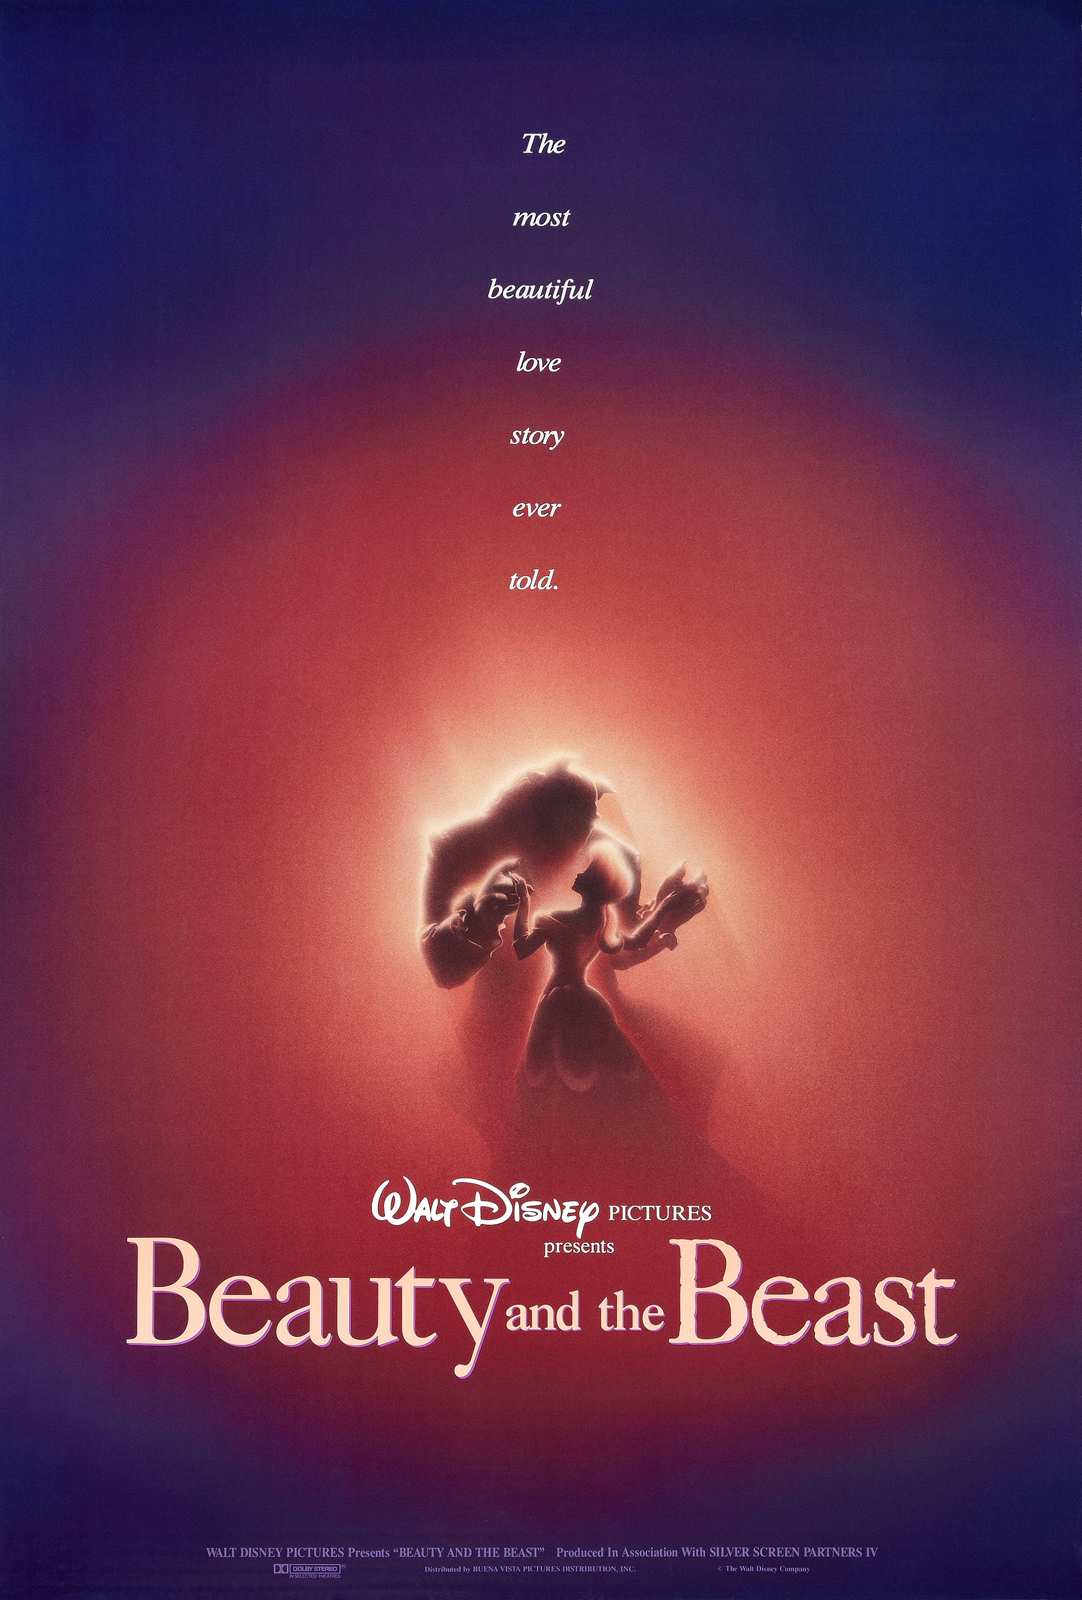 disney-releases-gorgeous-poster-for-beauty-and-the-beast2